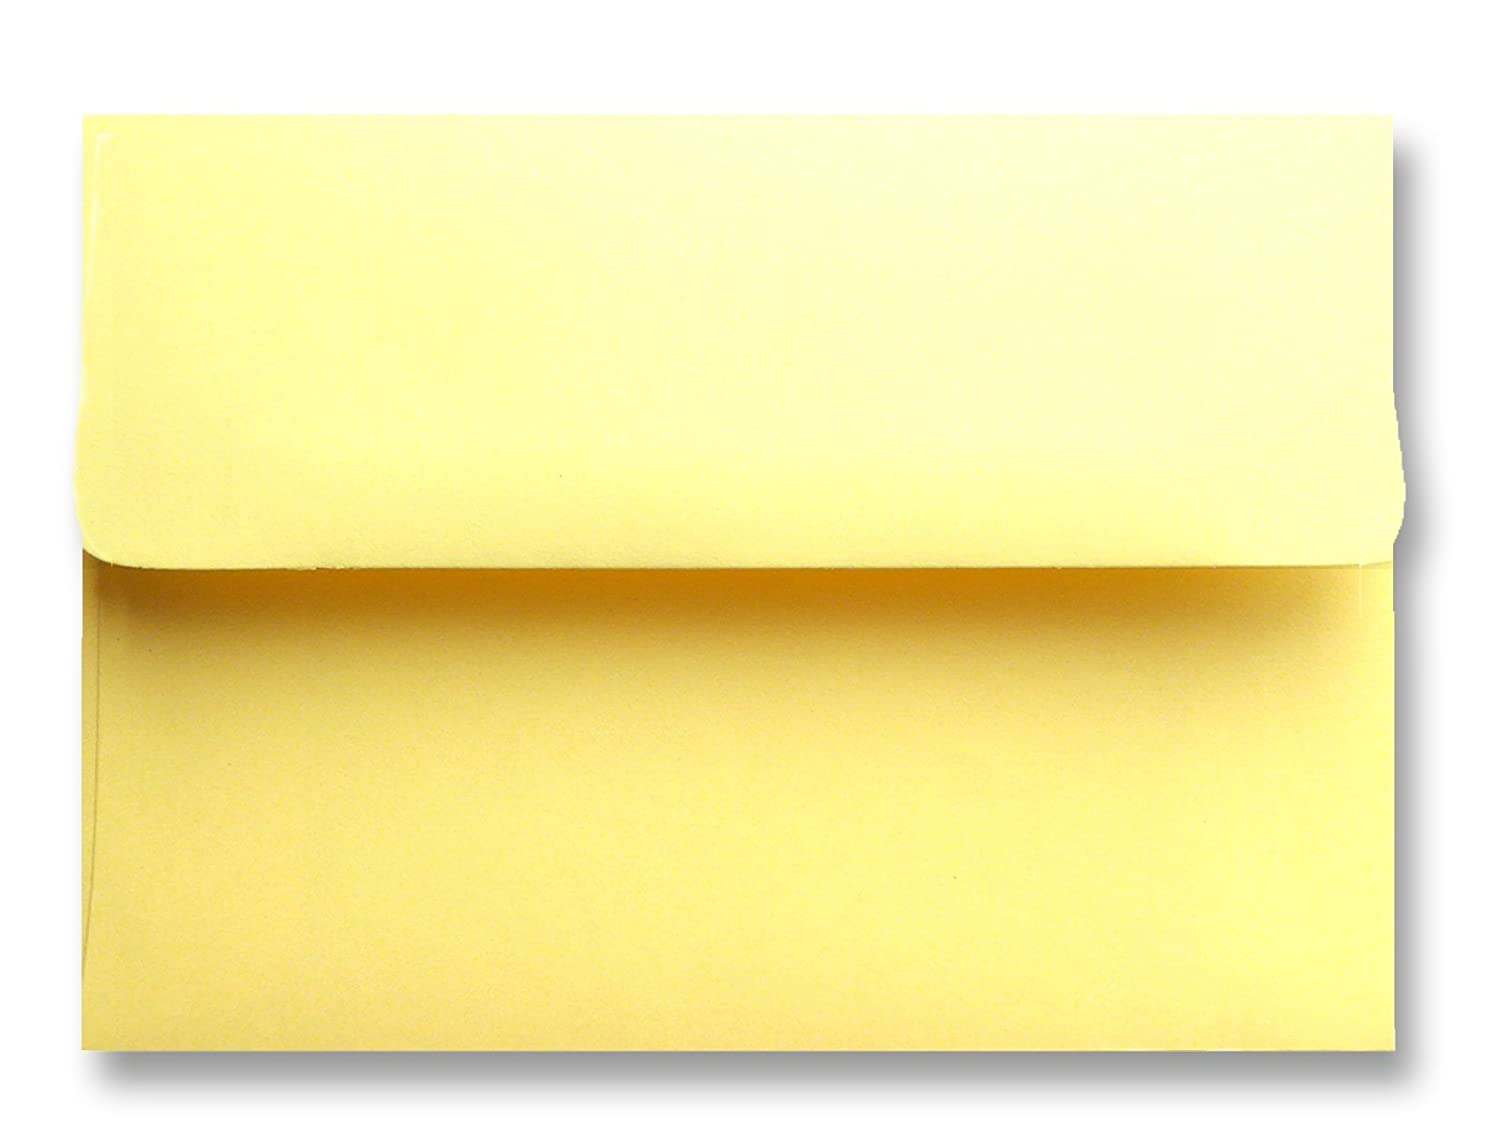 Canary Yellow Pastel 100 Boxed A2 Envelopes for 4-1/8 X 5-1/2 Response Enclosures Invitations from The Envelope Gallery